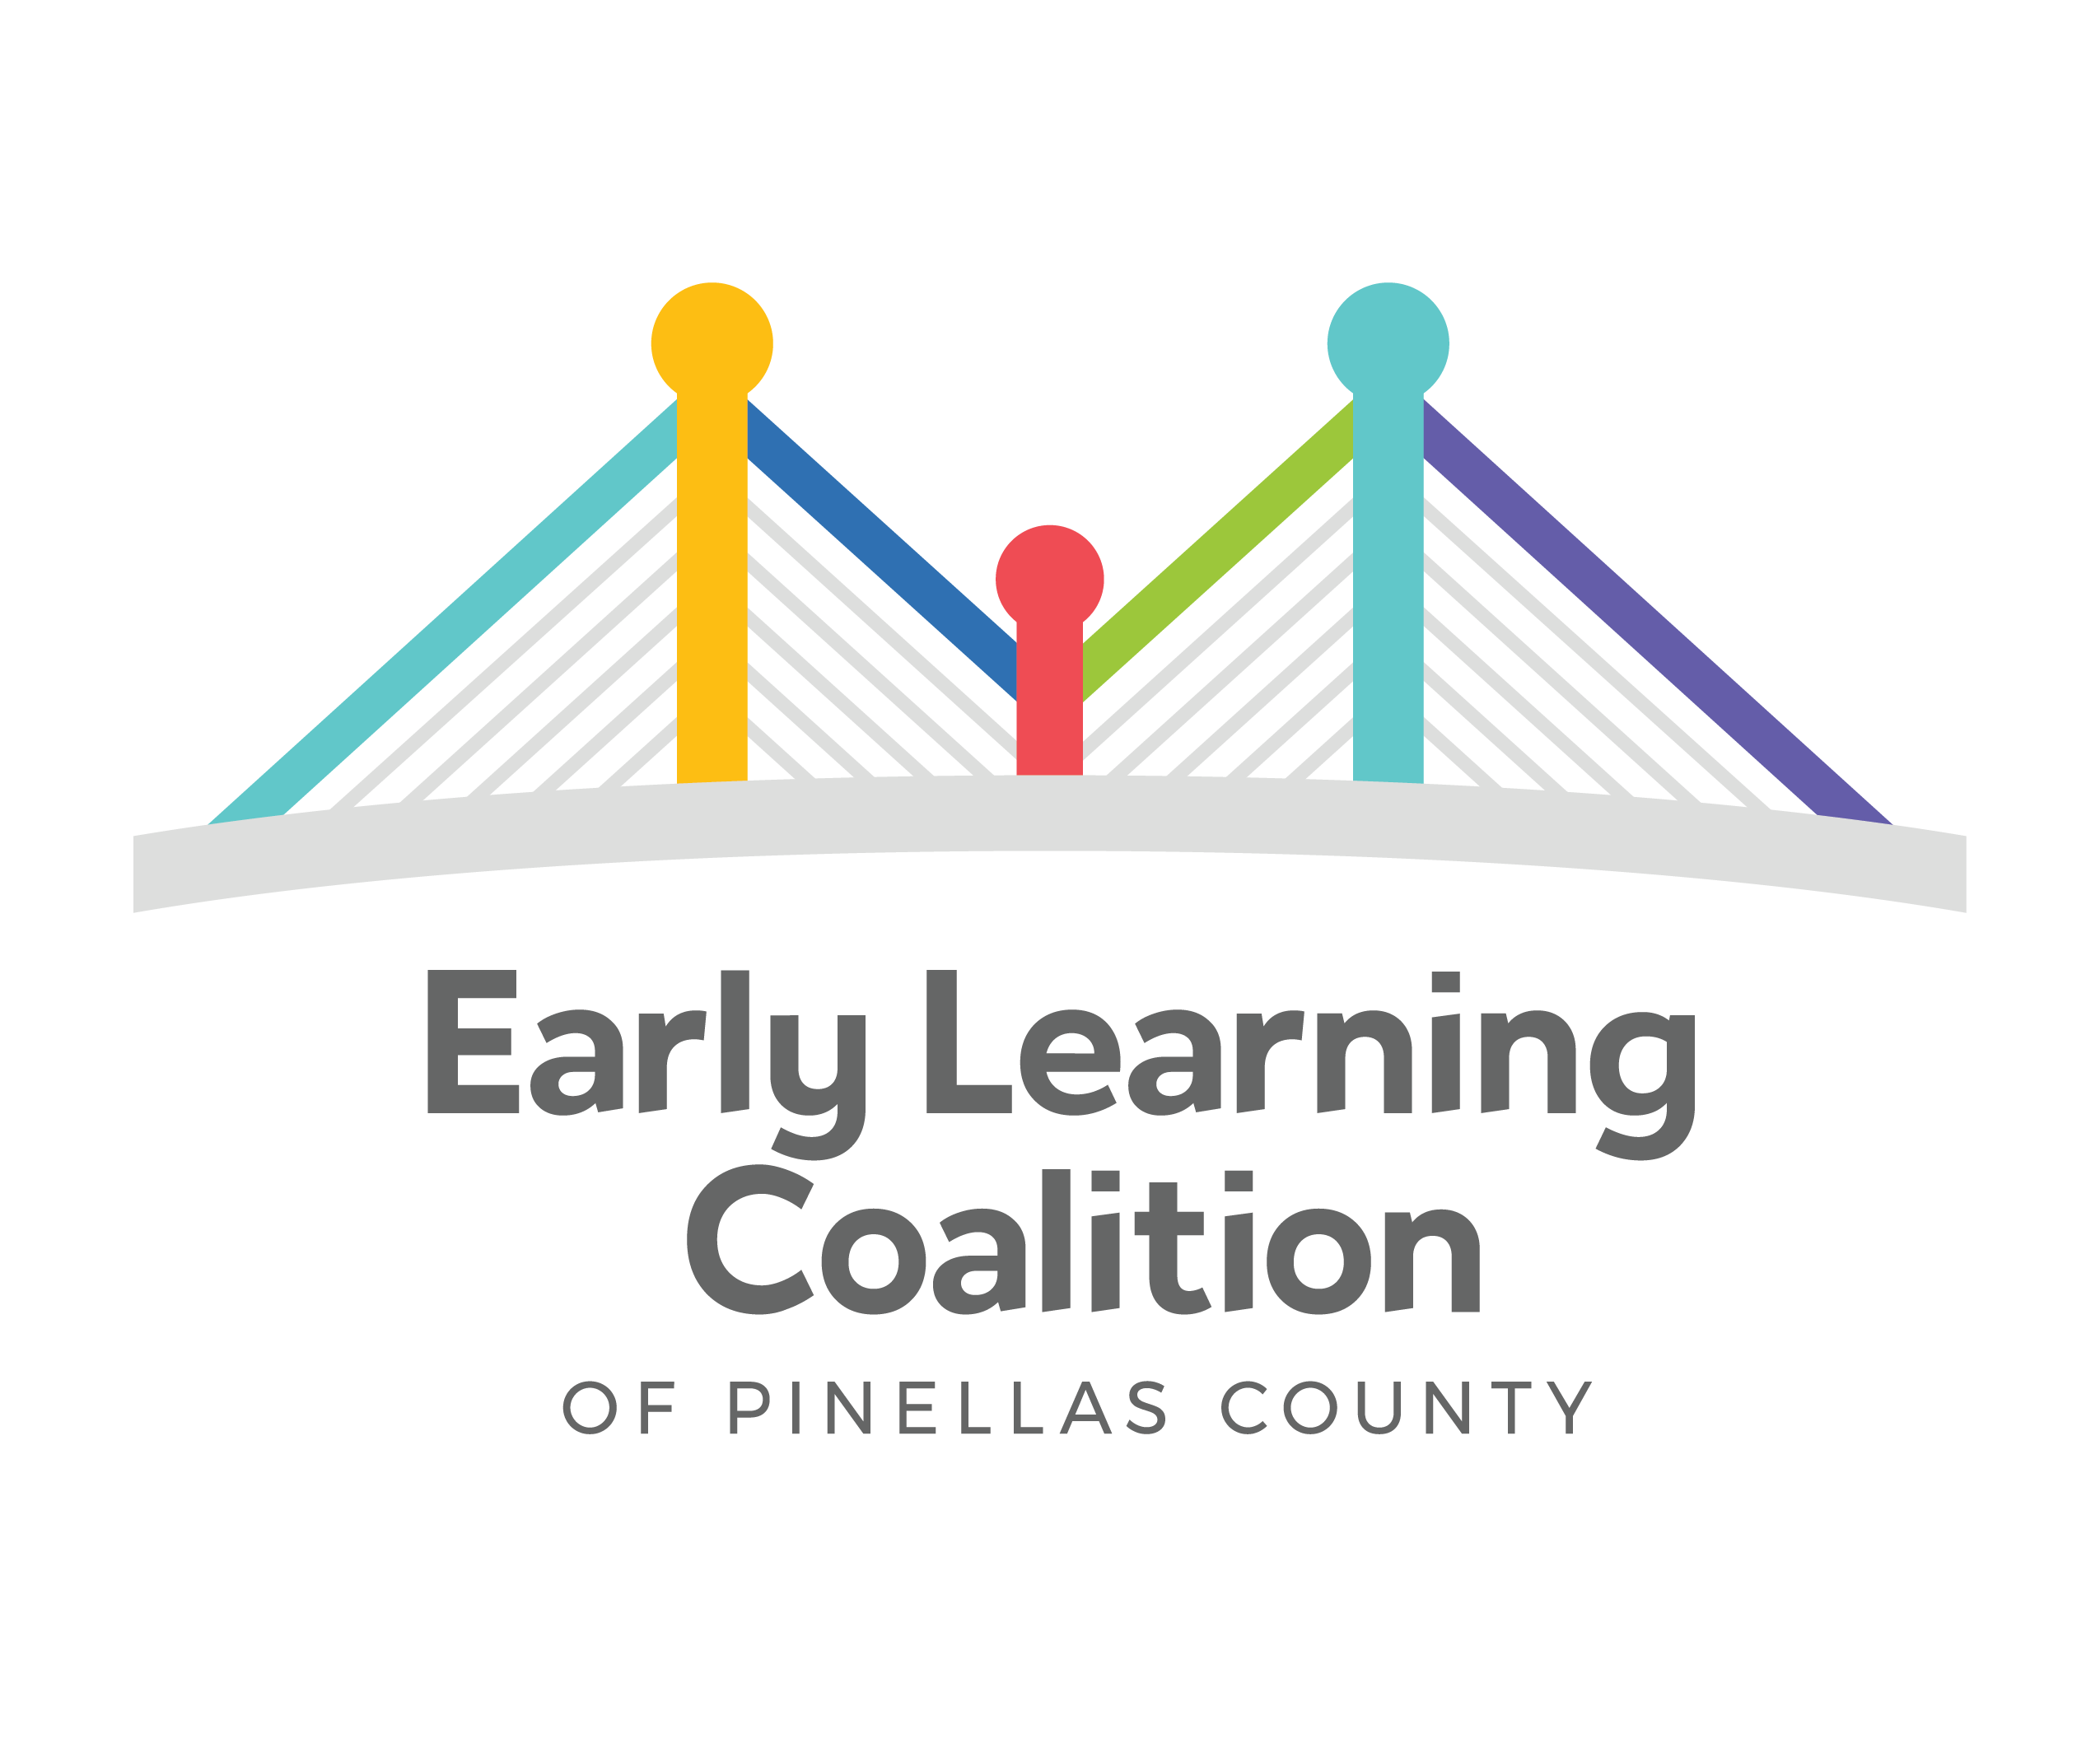 Early Learning Coalition of Pinellas County logo